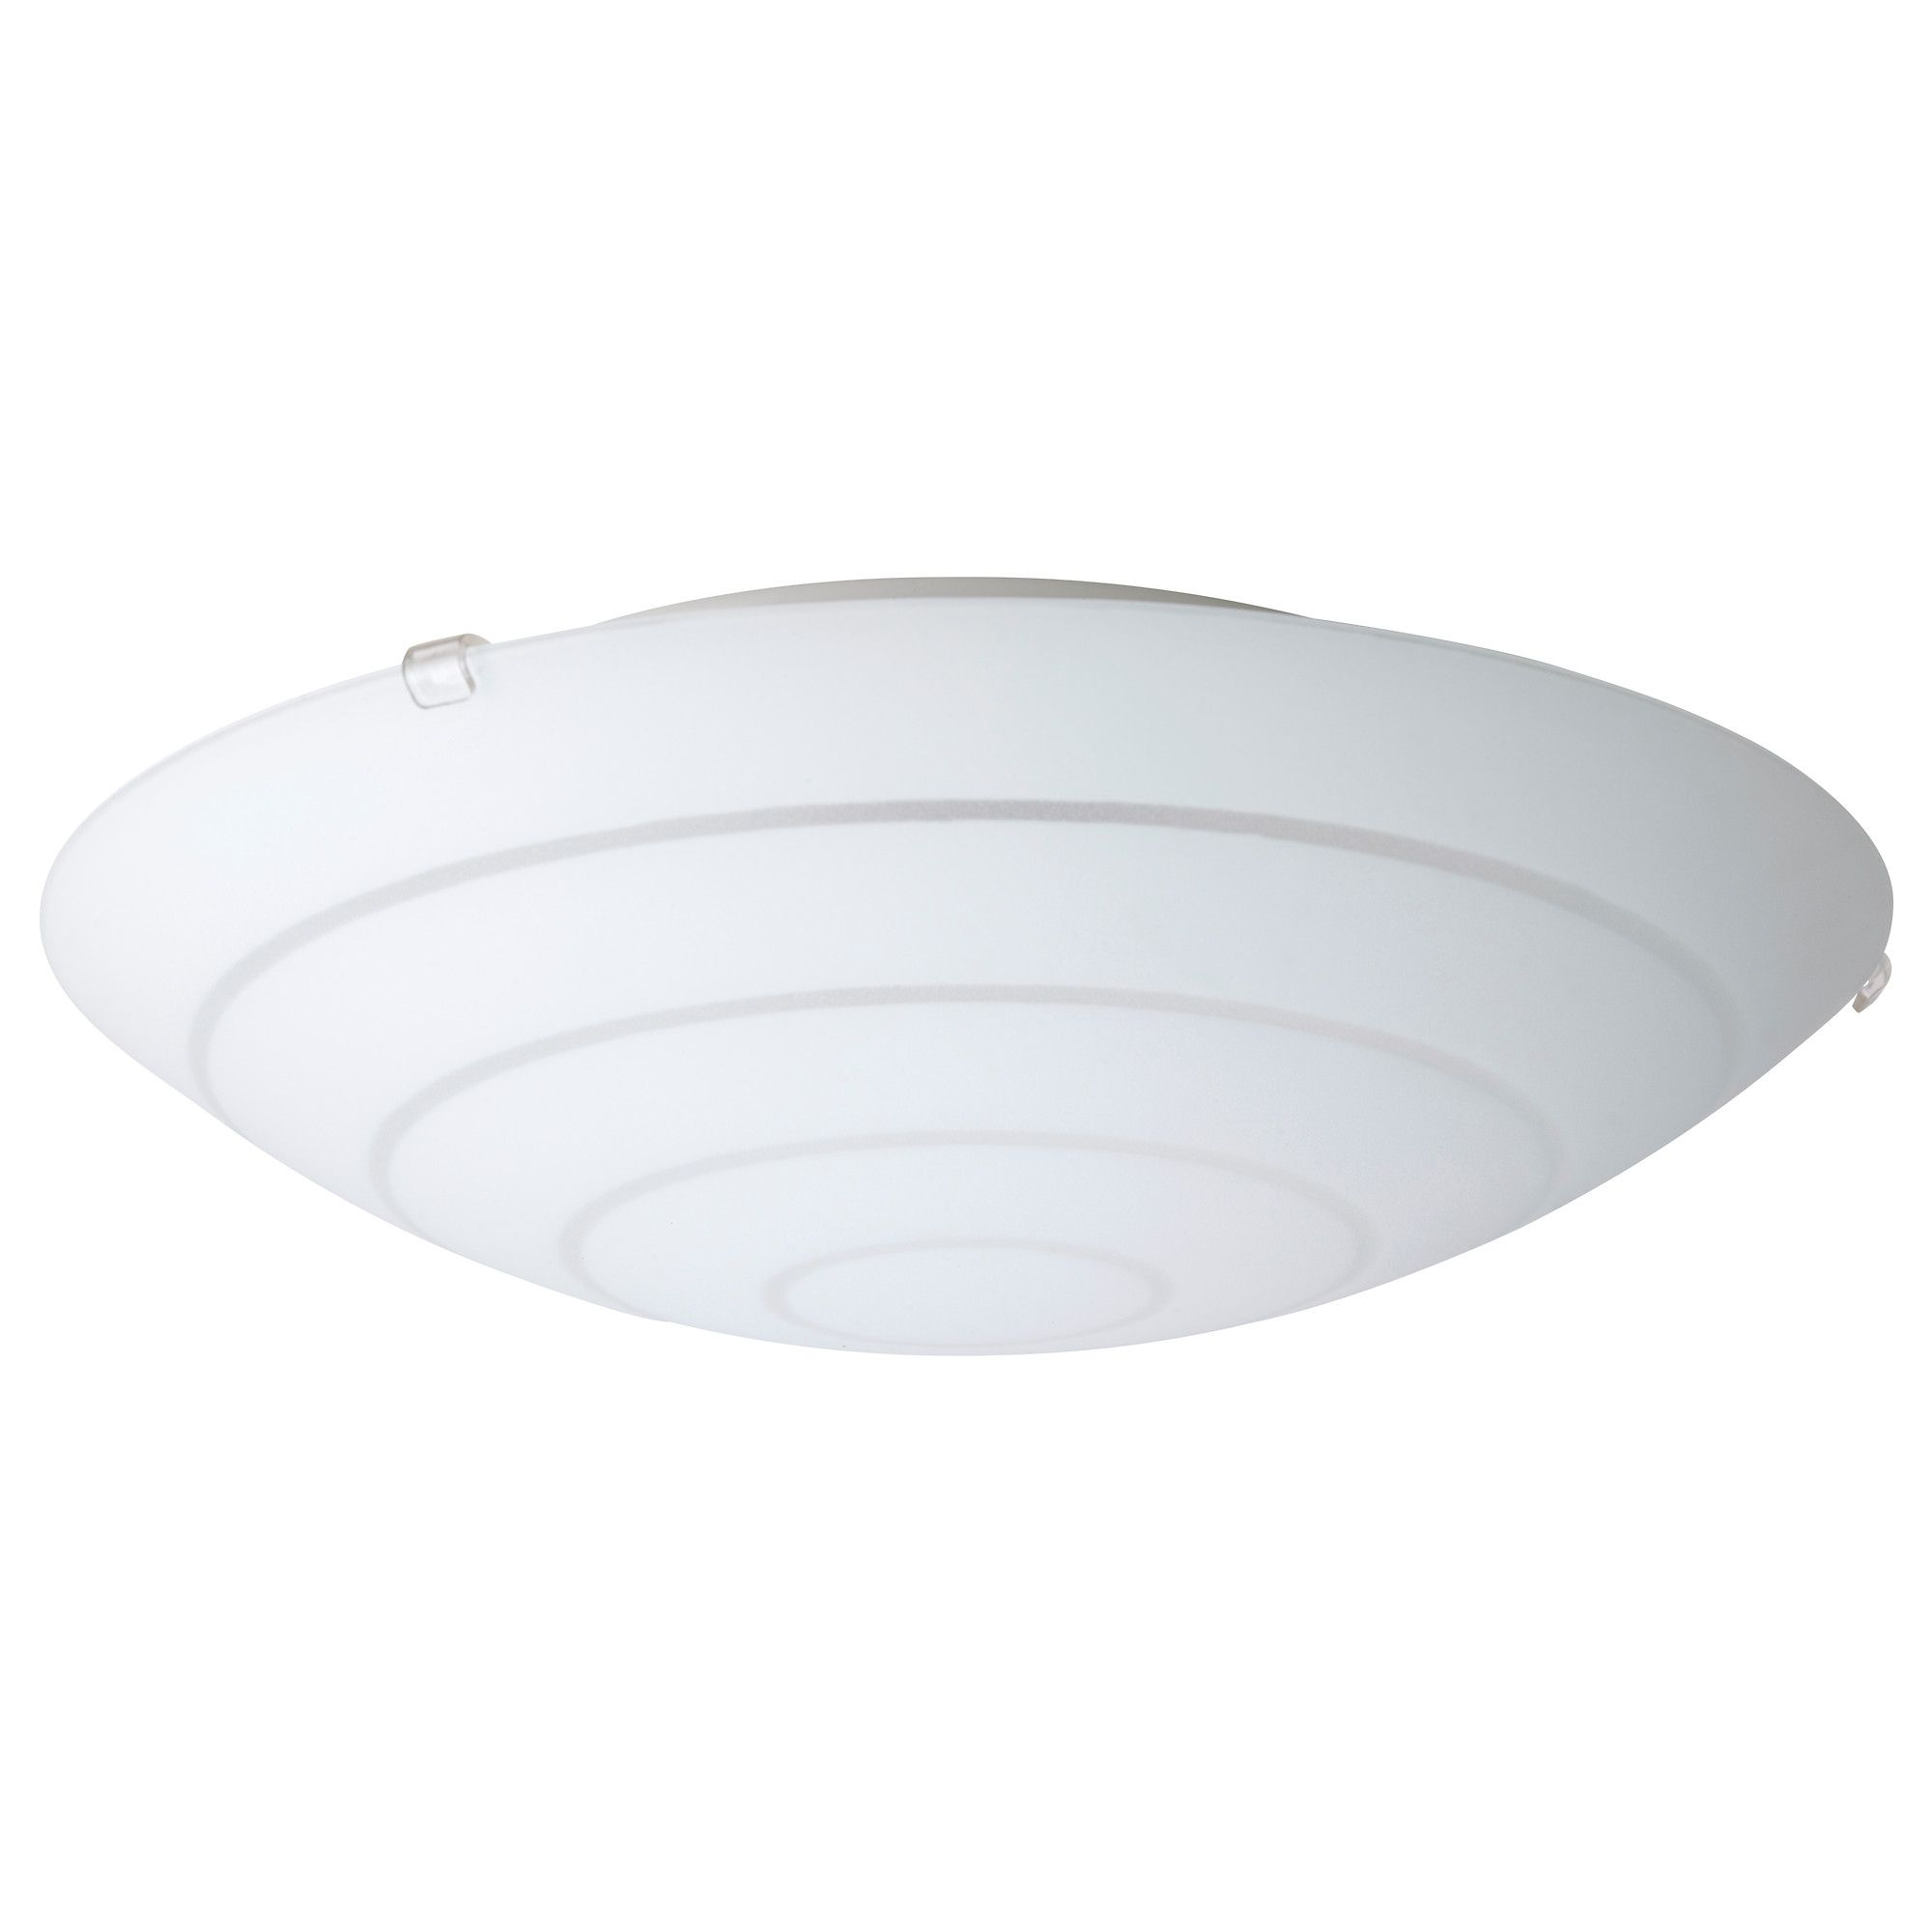 Overhead Lighting Hyby Ceiling Lamp Ikea 13 Hall Basement Possibly Office